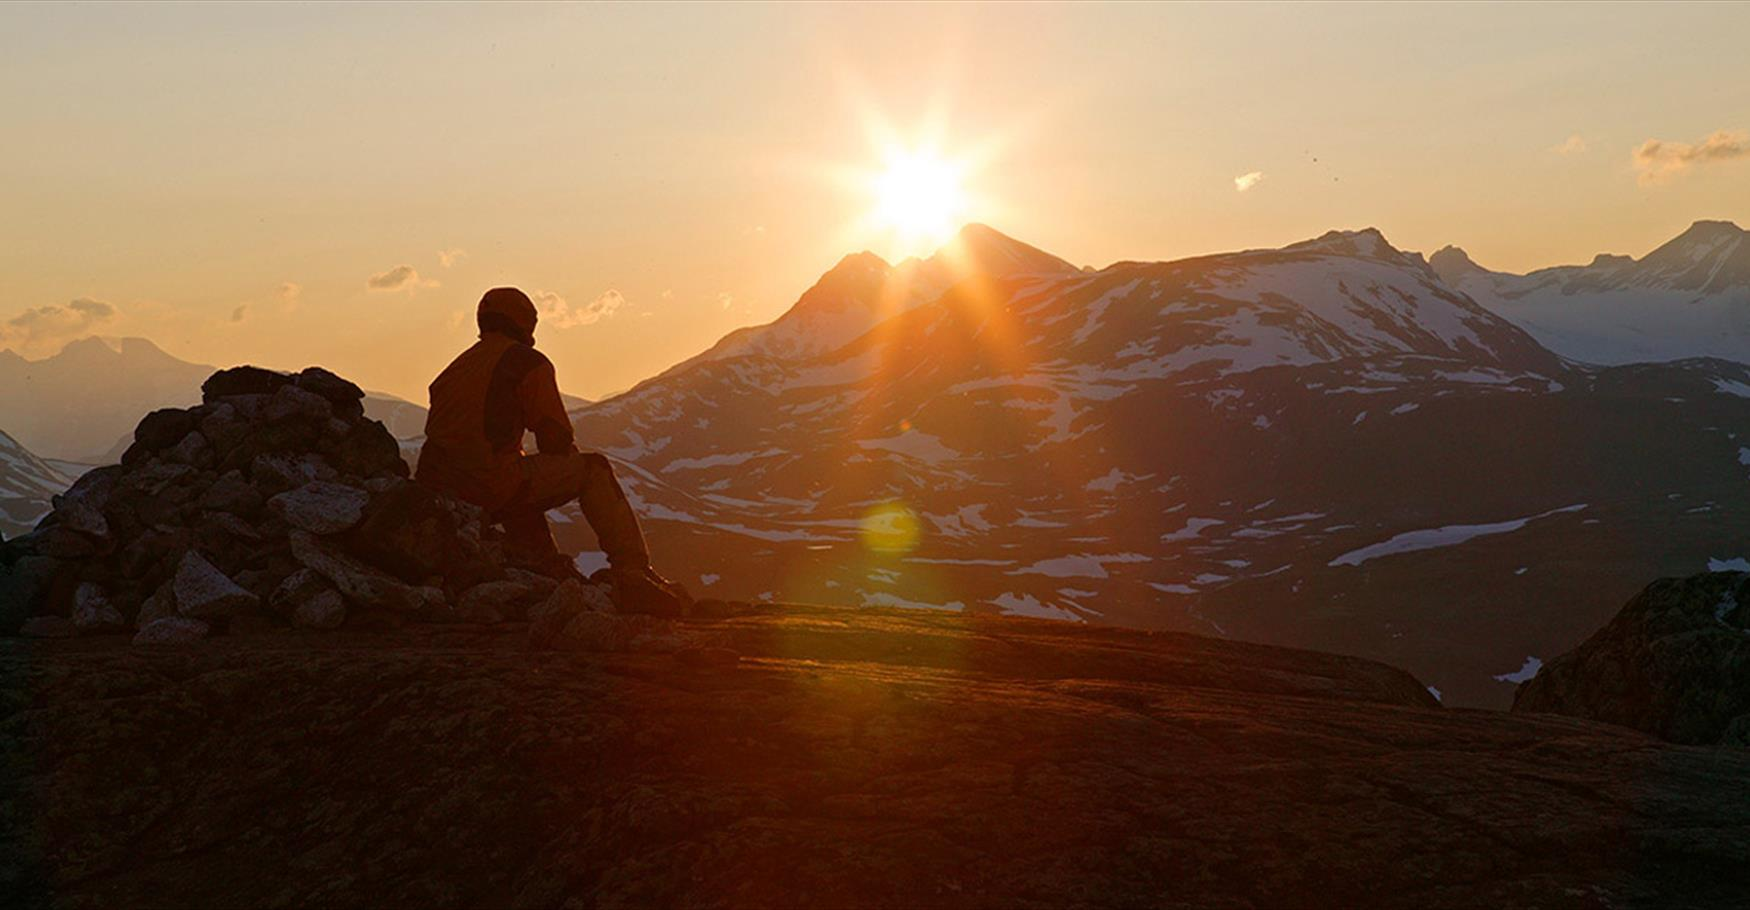 Sunset in Jotunheimen.